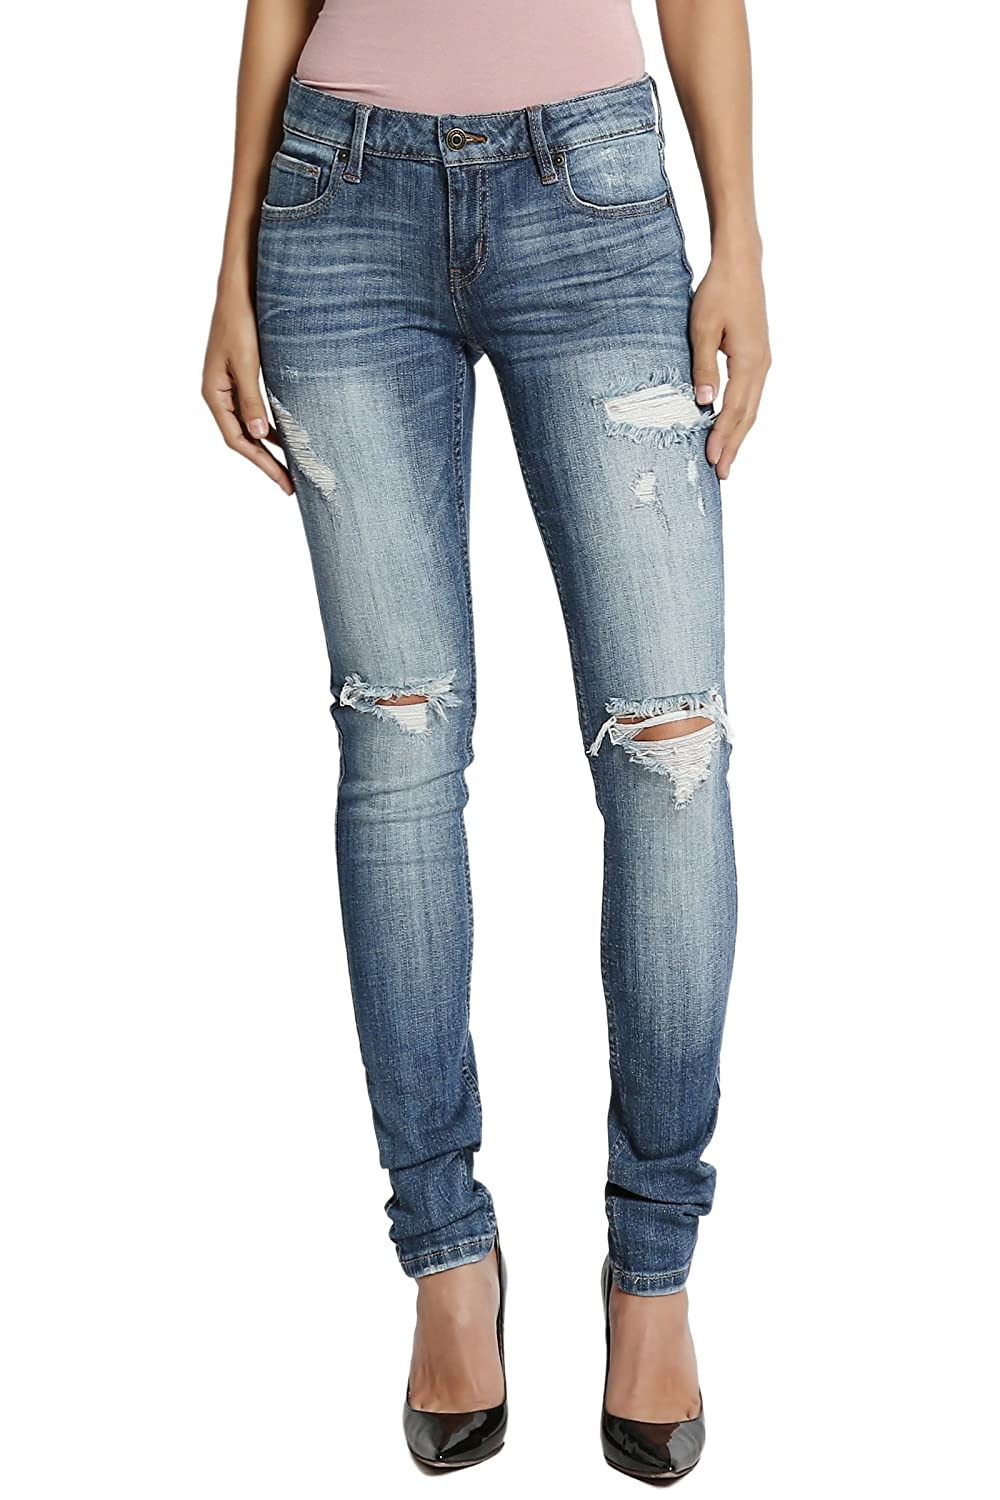 c8ed0005384 TheMogan Roll Up Relaxed Stretch Skinny Jeans in Distressed Medium Blue Wash  at Amazon Women s Jeans store